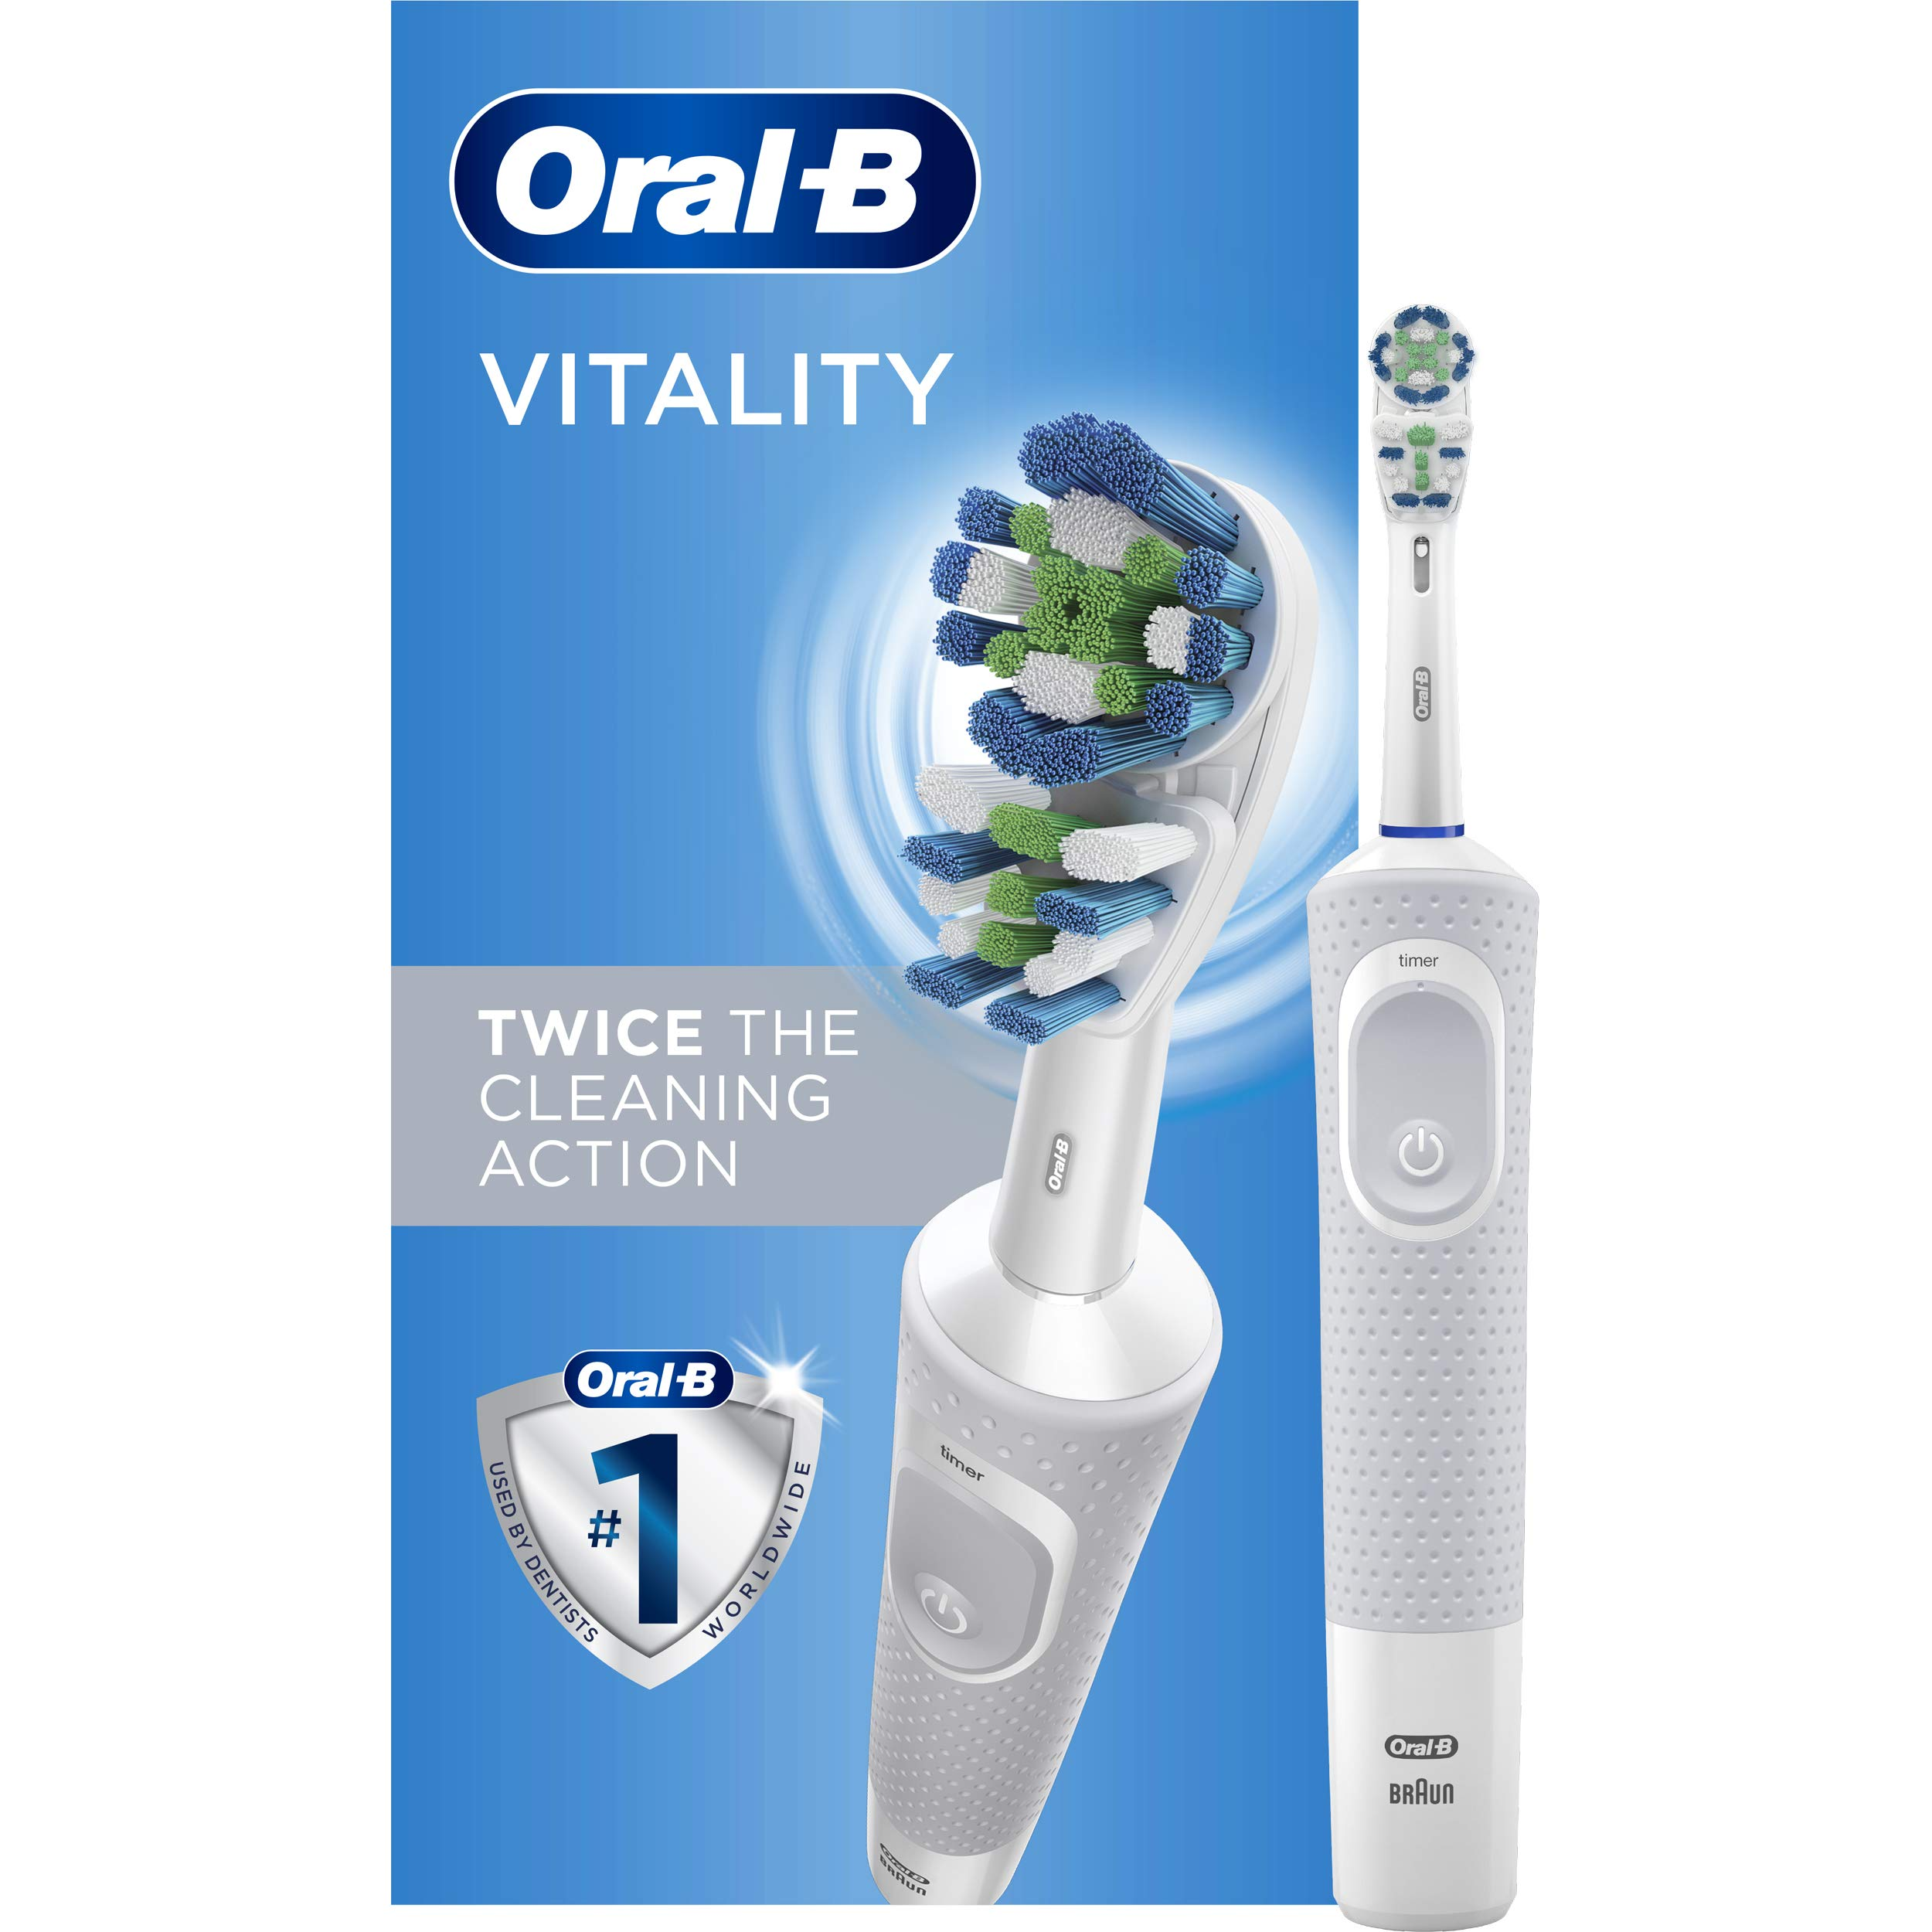 Oral-B Vitality Dual Clean Electric Toothbrush, White